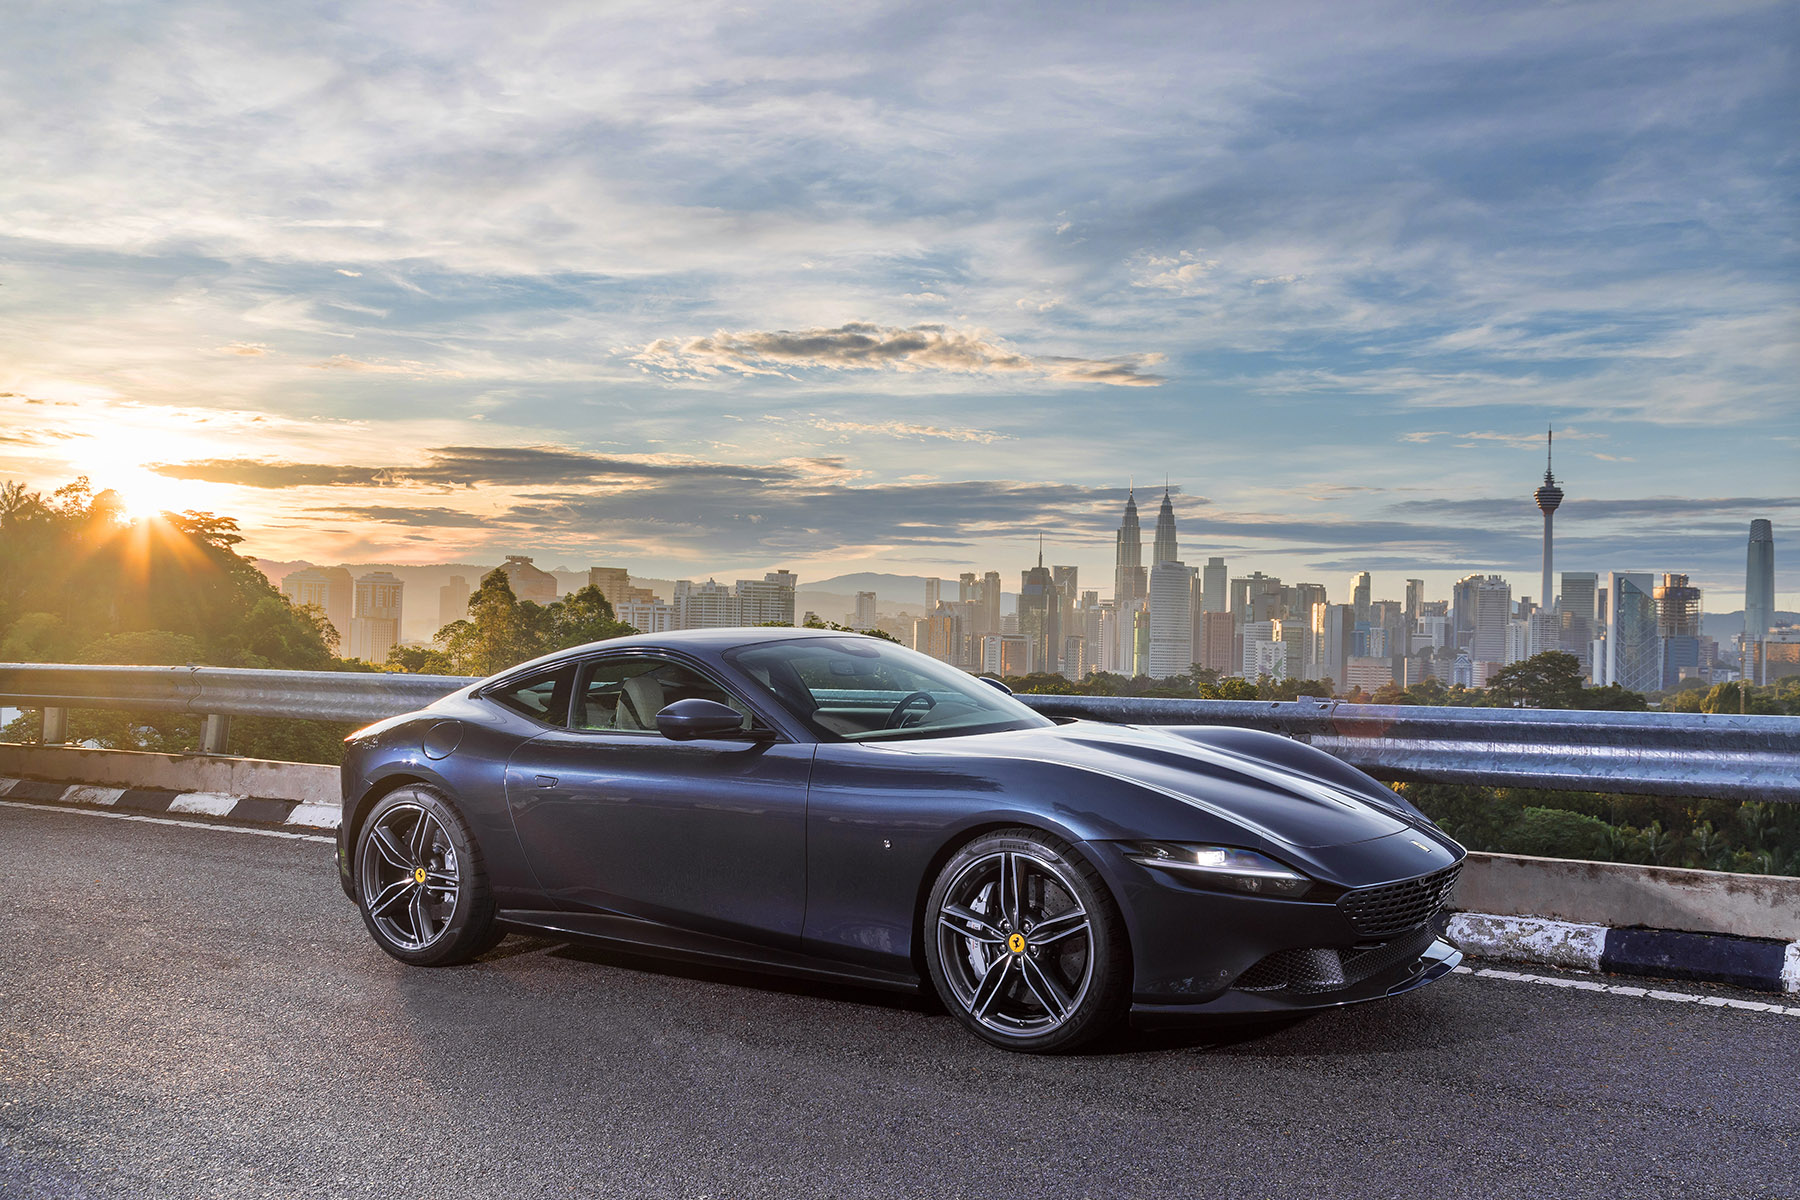 The New Ferrari Roma V8 2 Coupe Has Landed In Malaysia